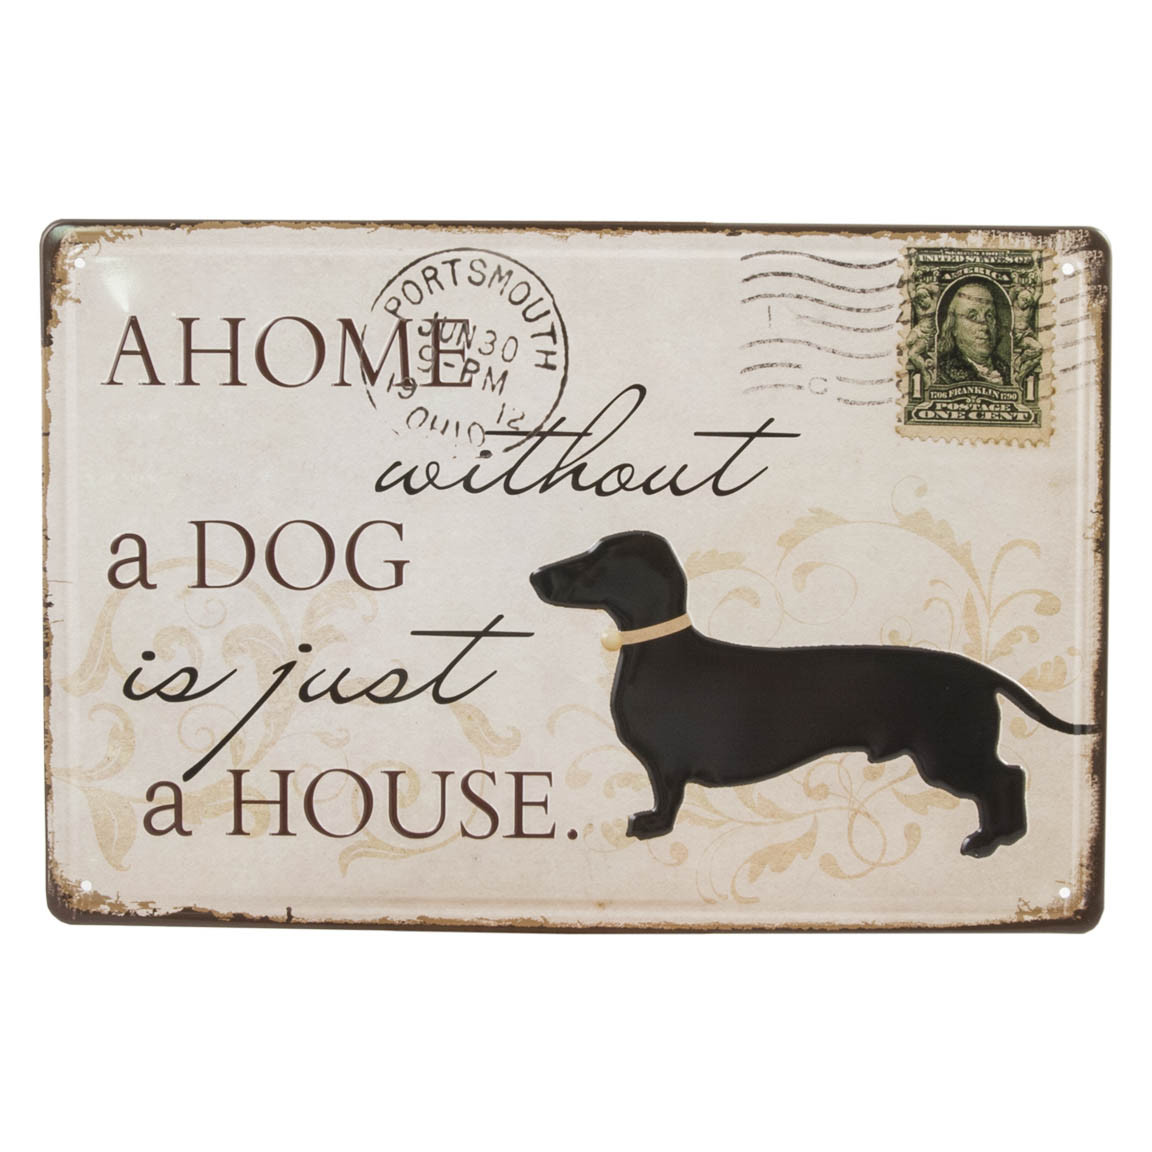 40-060 A Home without a Dog